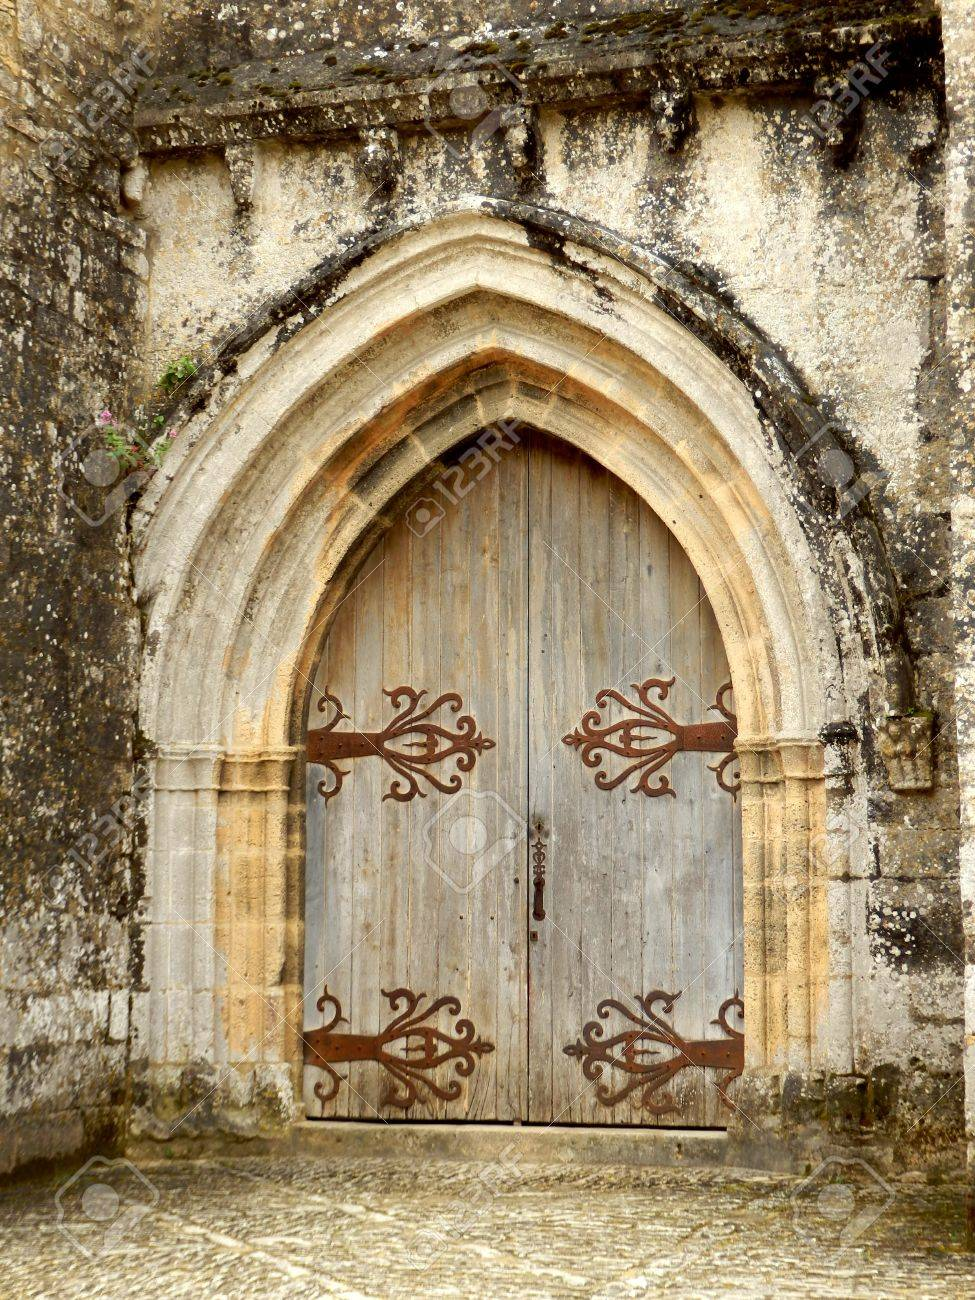 Medieval arched double doors, located at Chateau de Beynac et Cazenac, Dordogne, France Stock Photo - 20367217